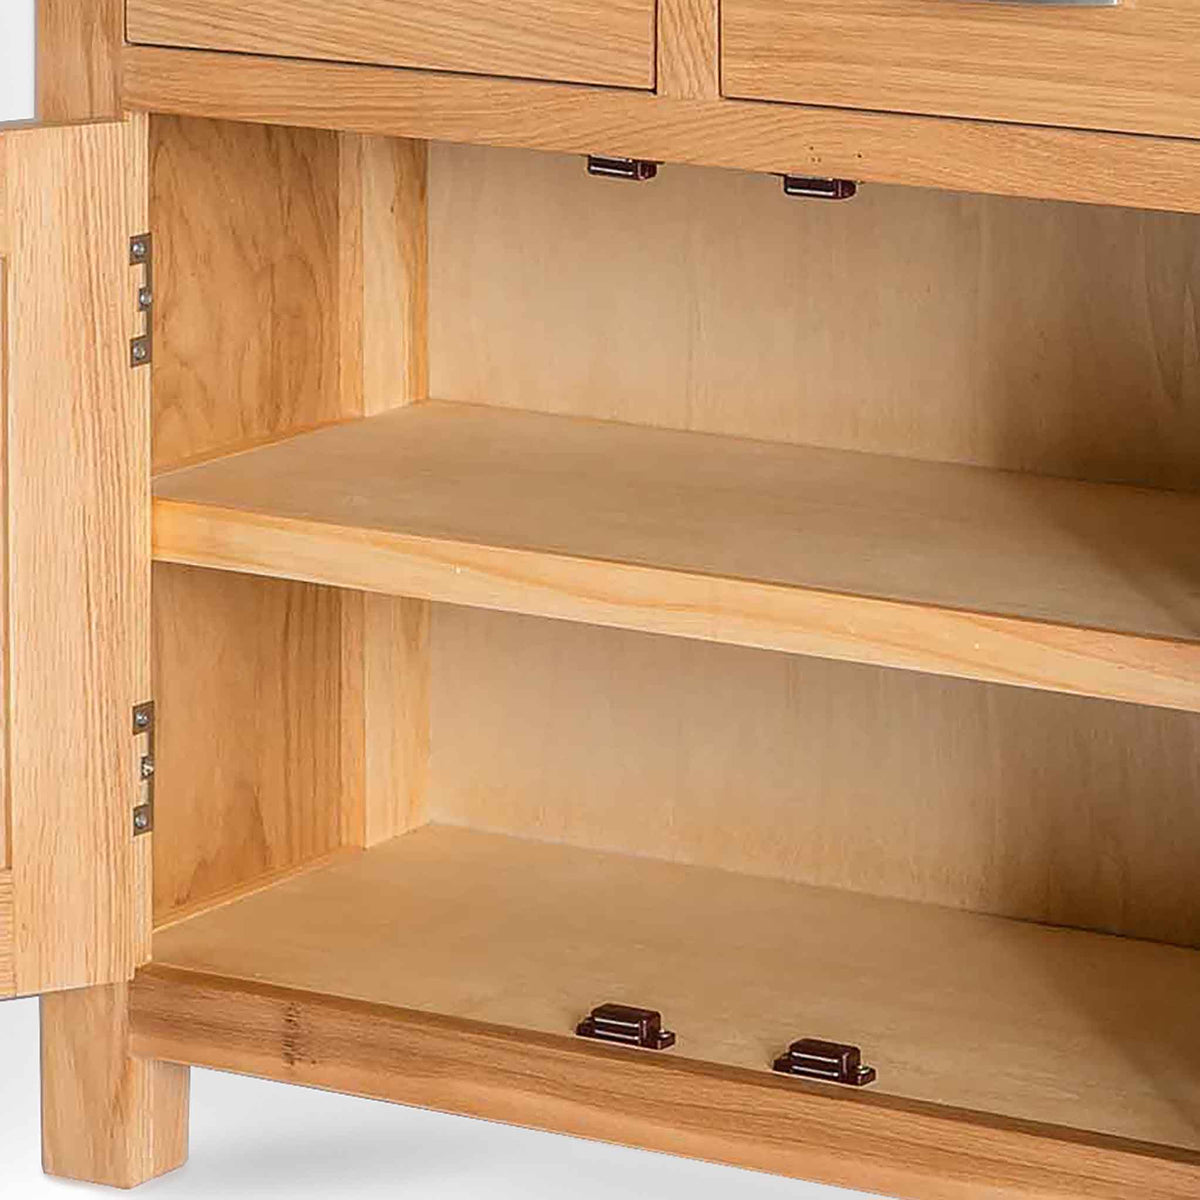 London Oak Mini Sideboard - View of inside the cupboard